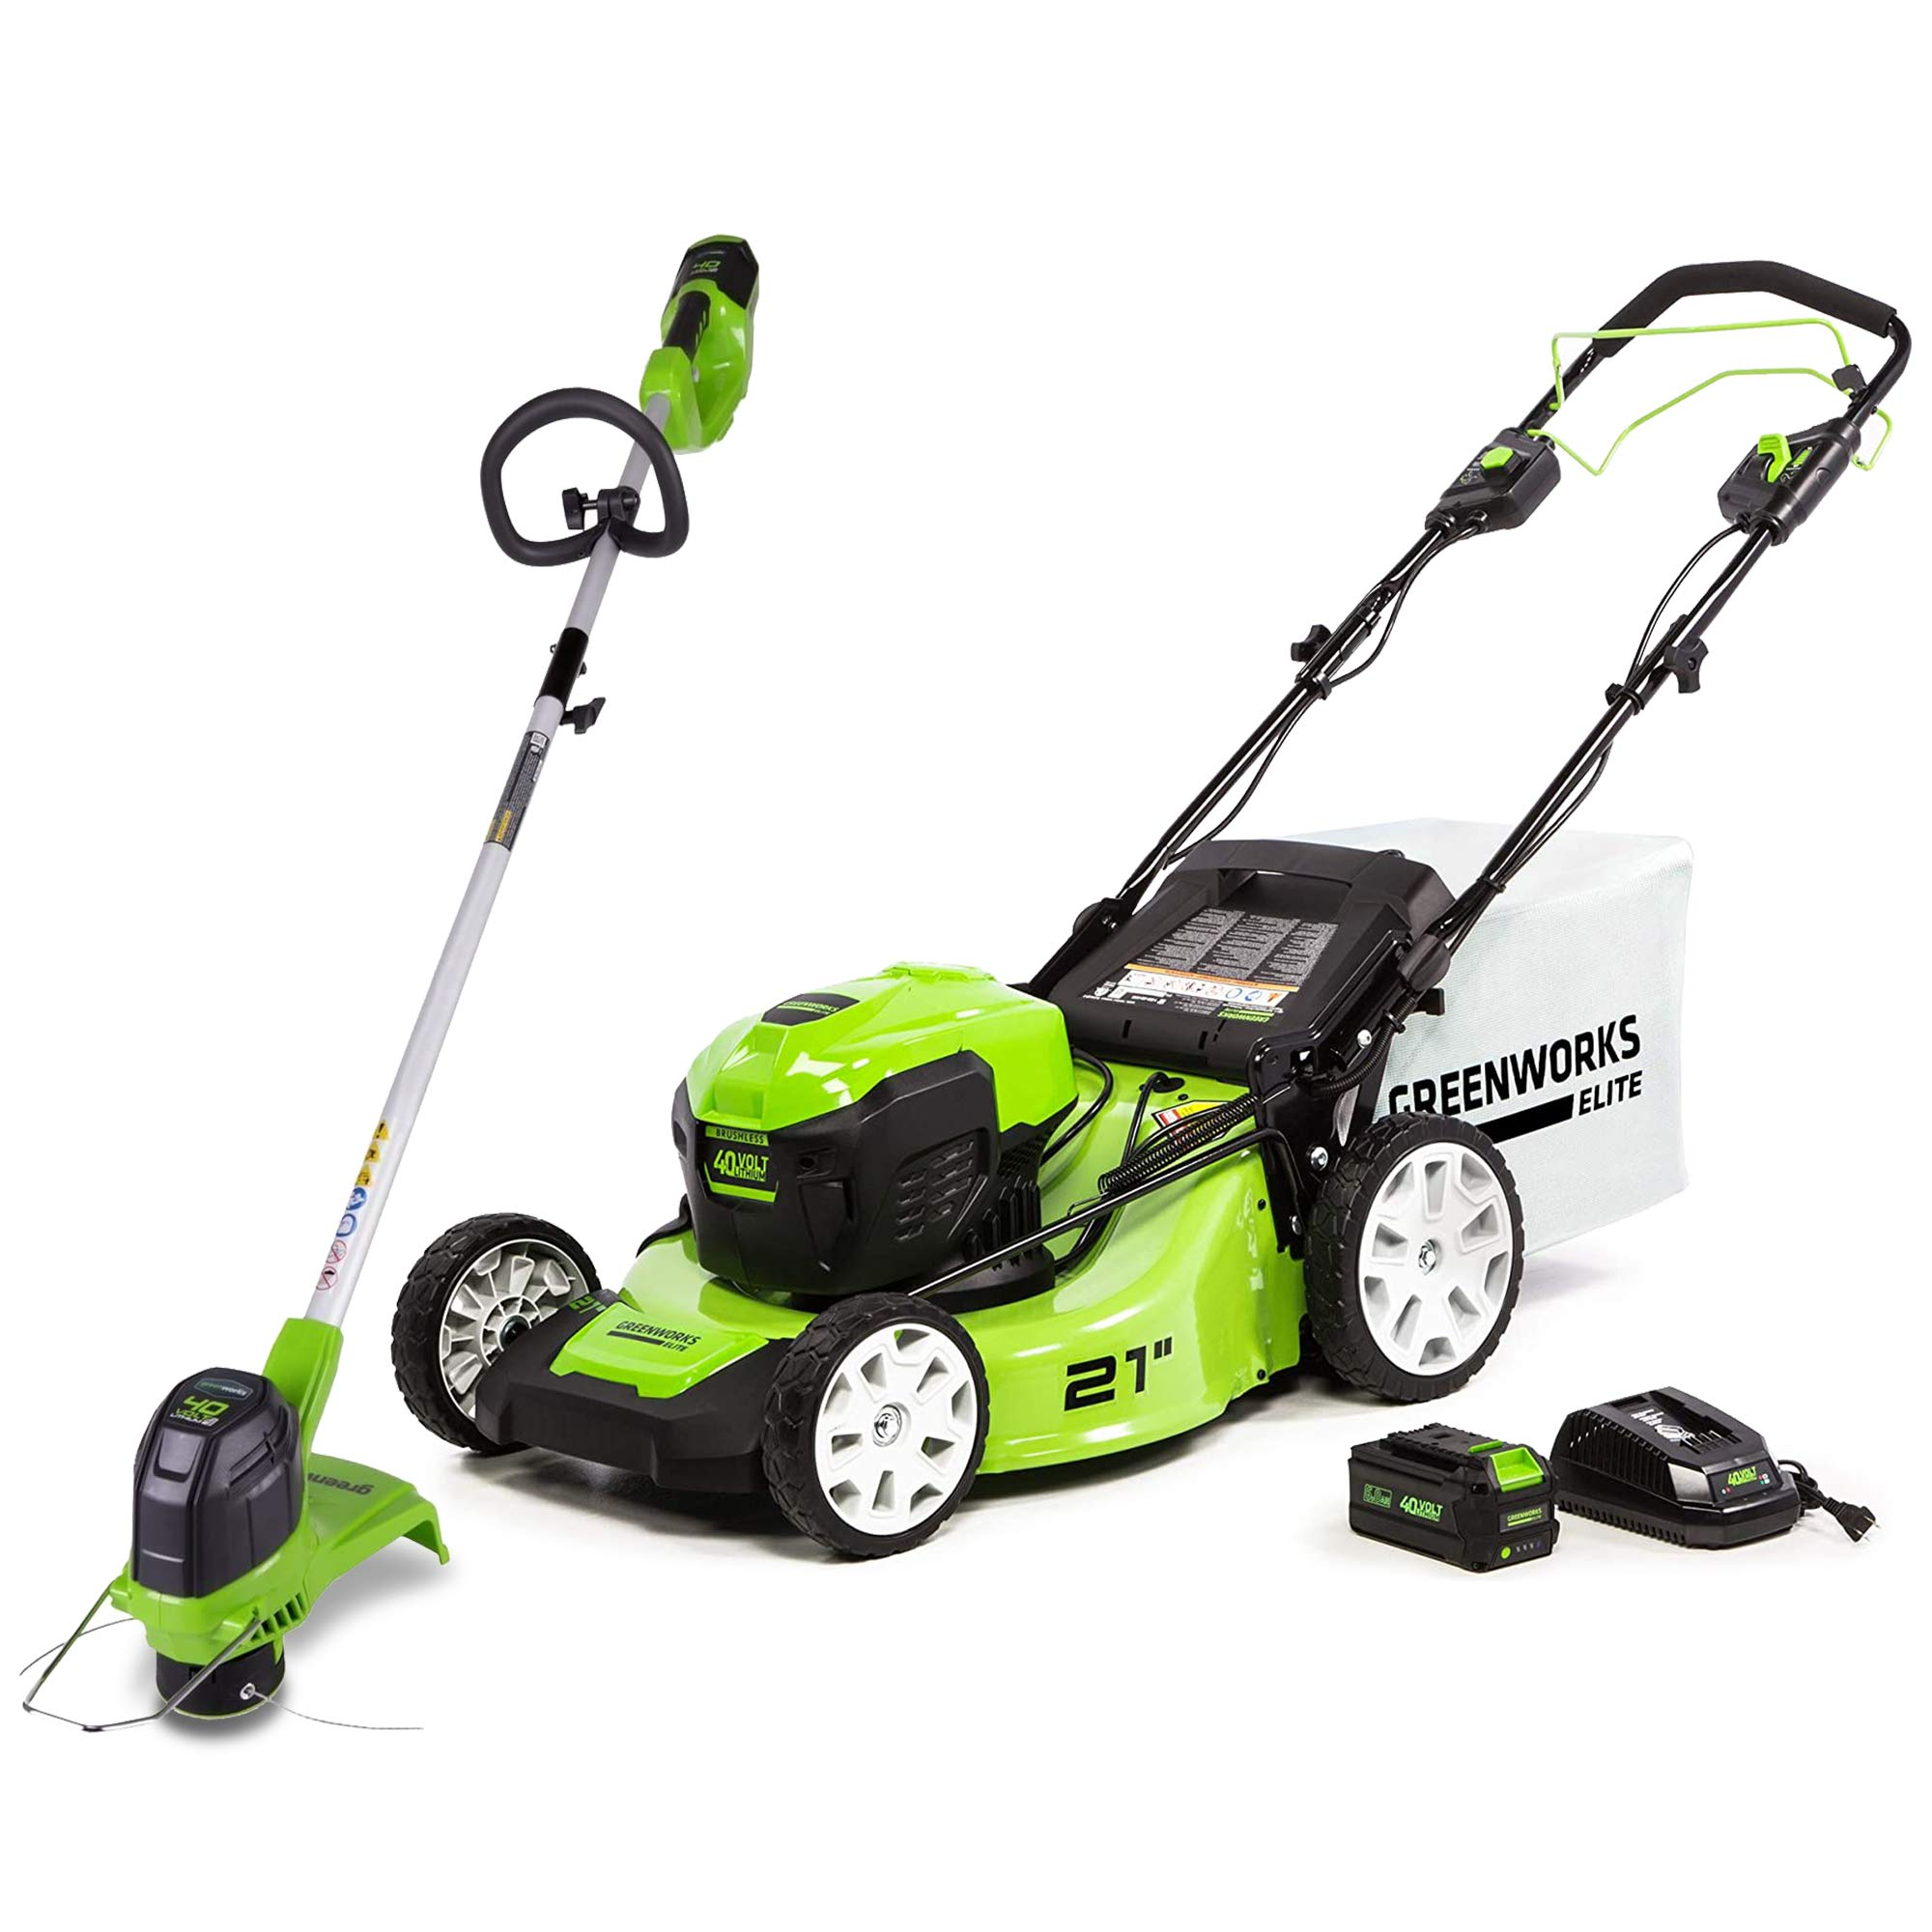 Save on Greenworks Outdoor Power Tools